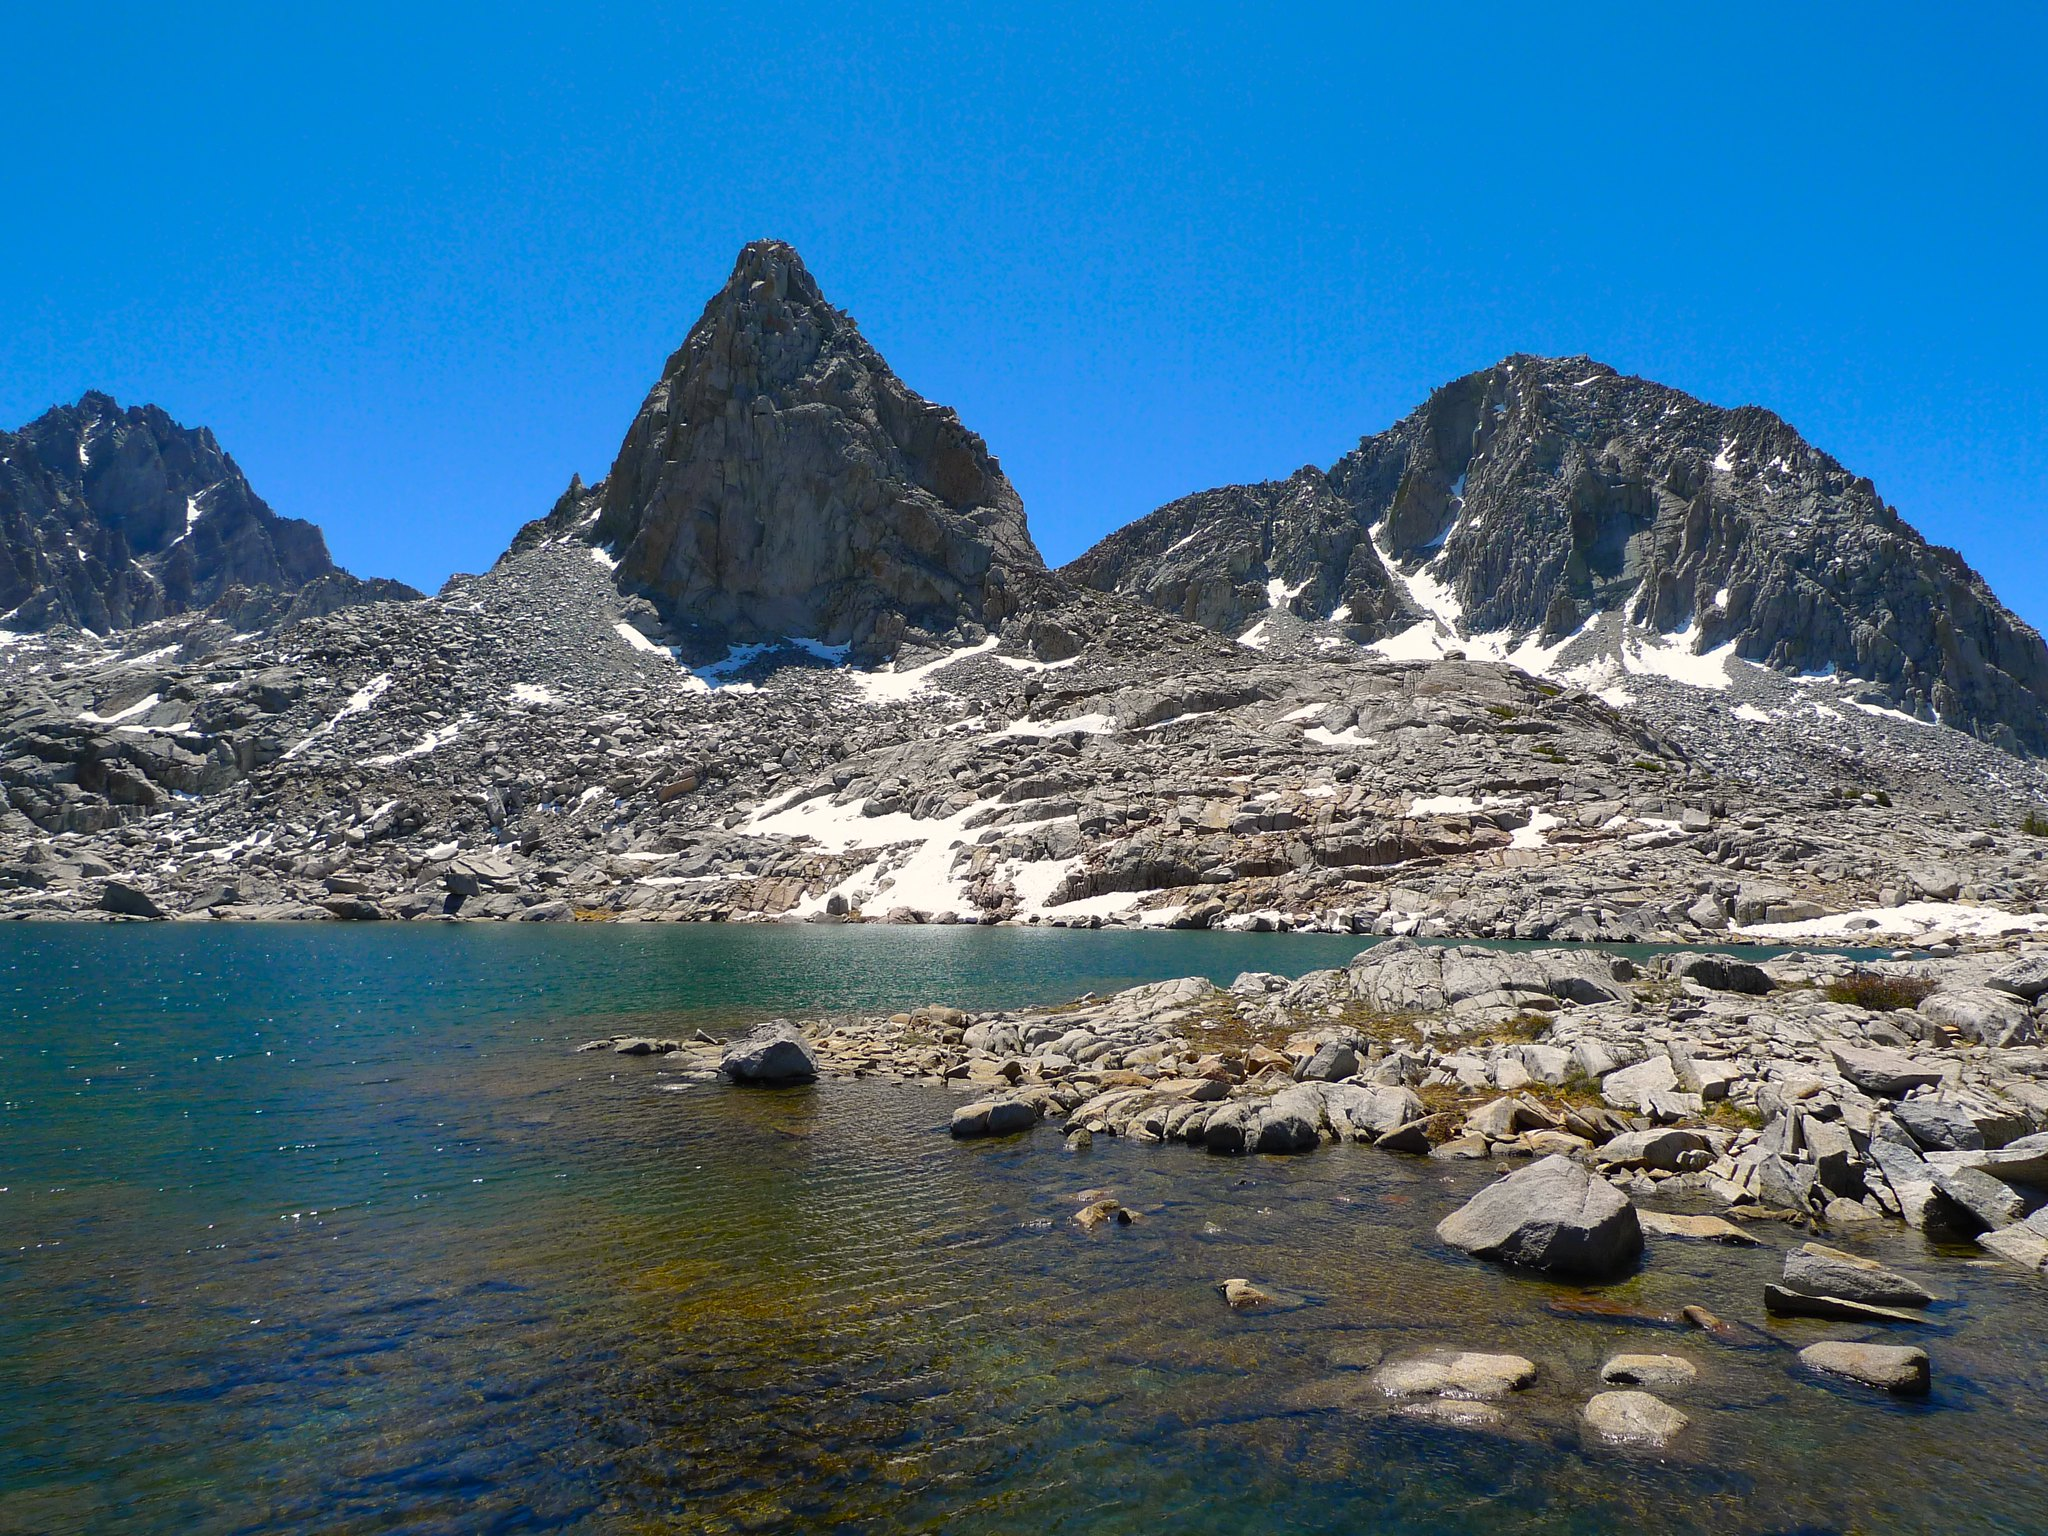 Isosceles Peak above Lake 11388